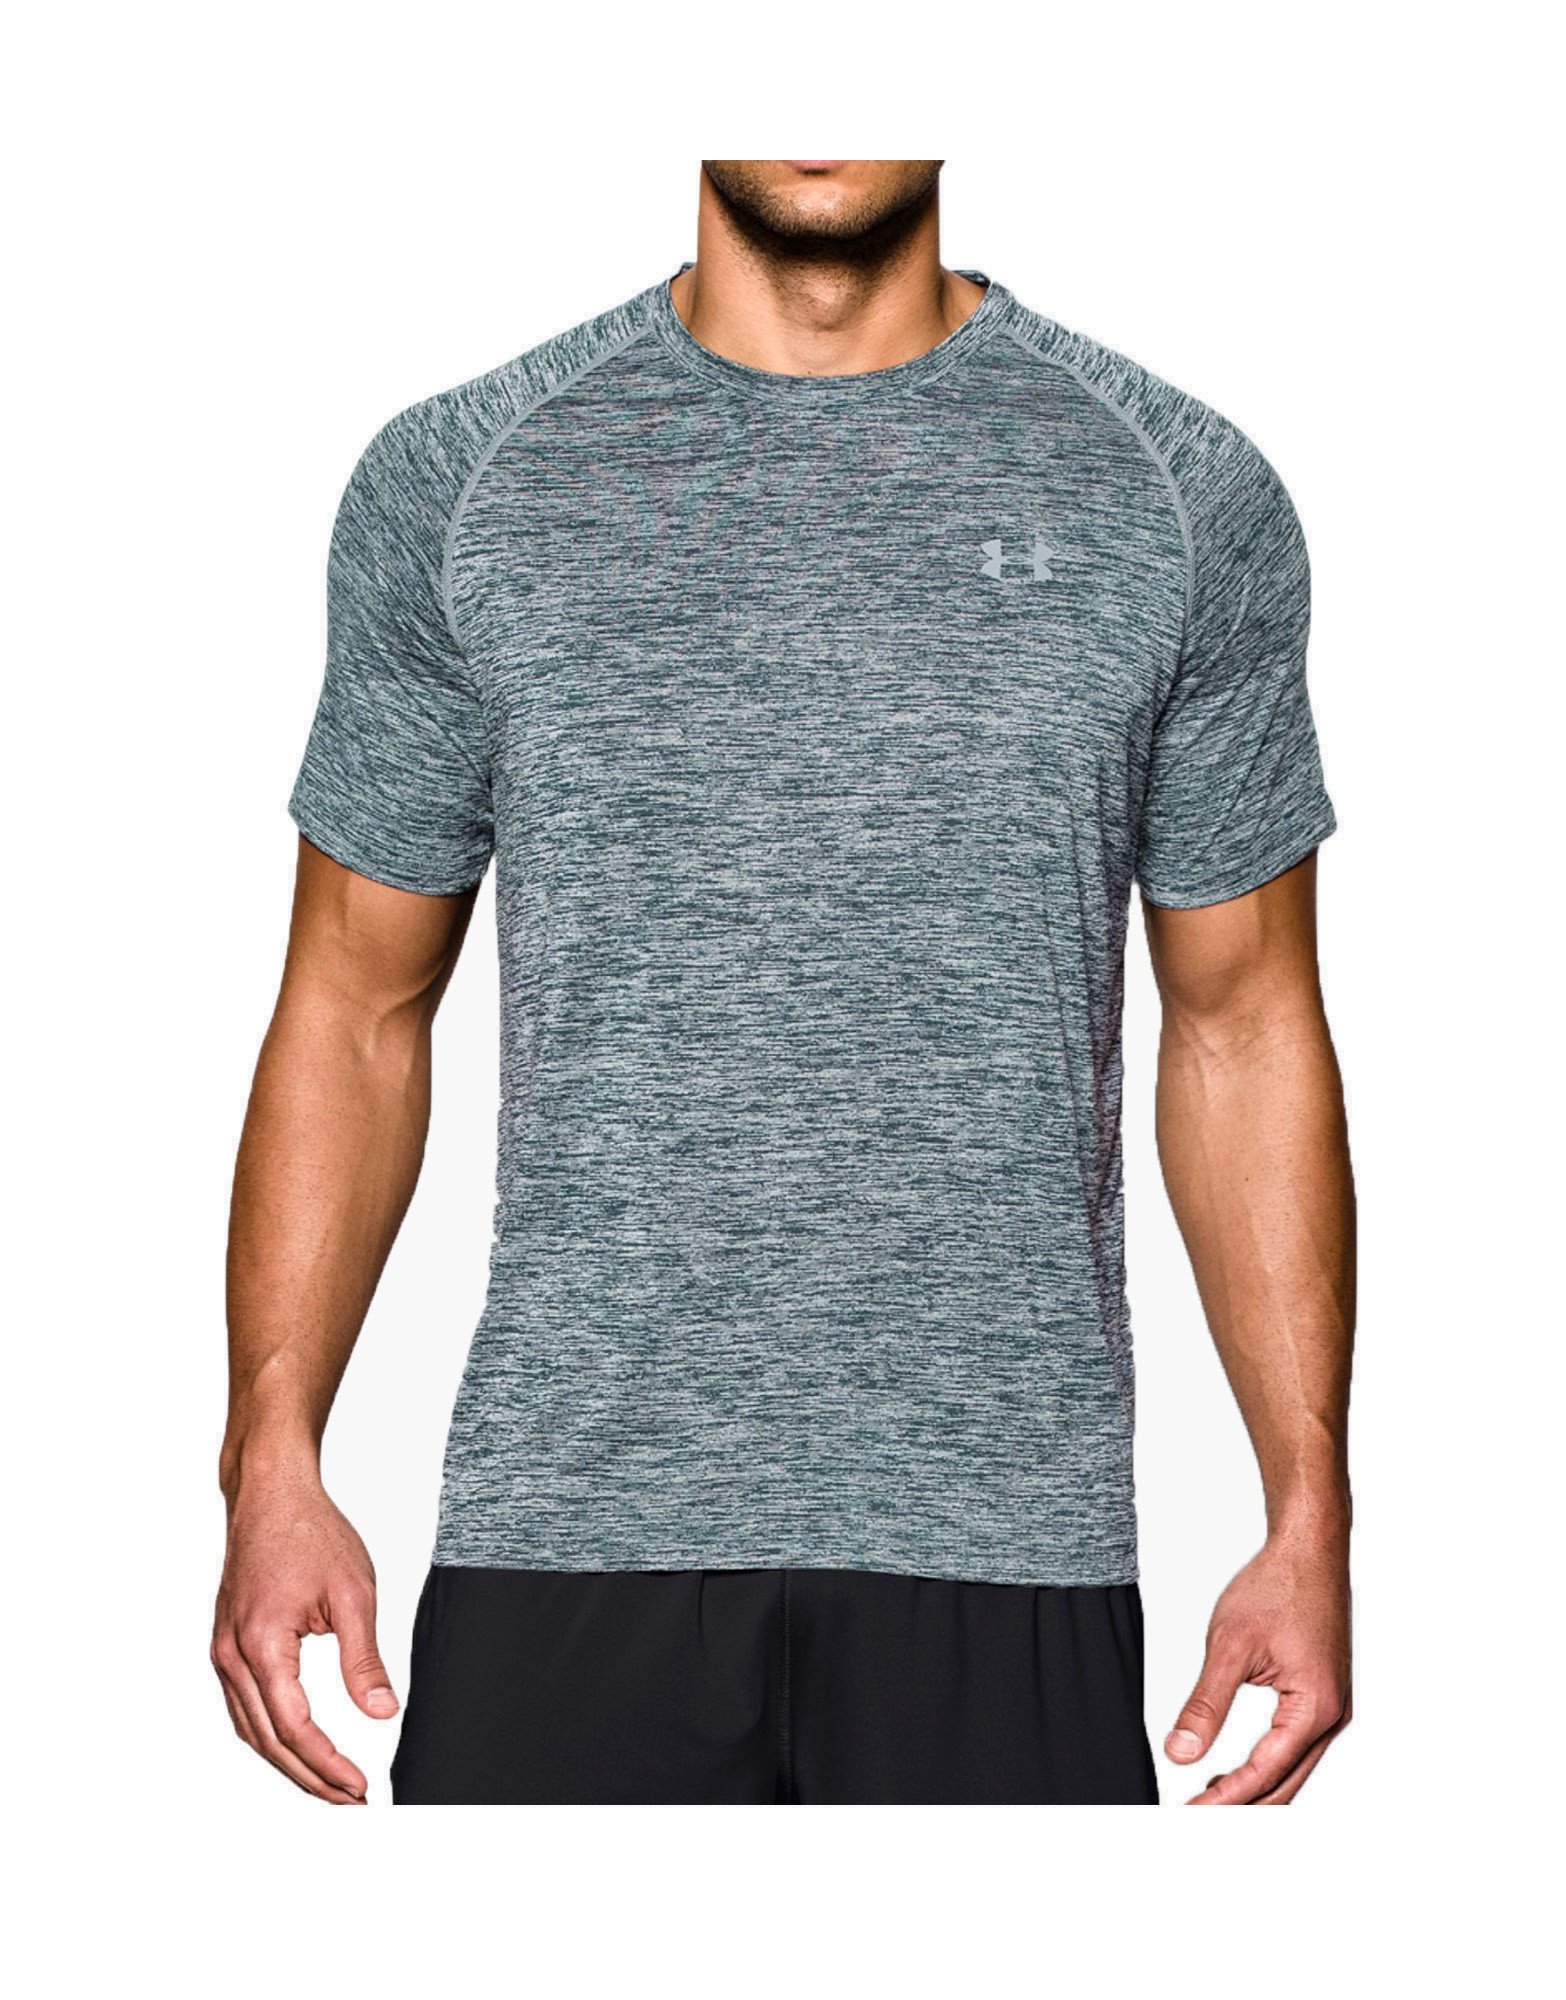 Men 39 s ua tech short sleeve t shirt by under armour colour for Under armour men s tech short sleeve t shirt